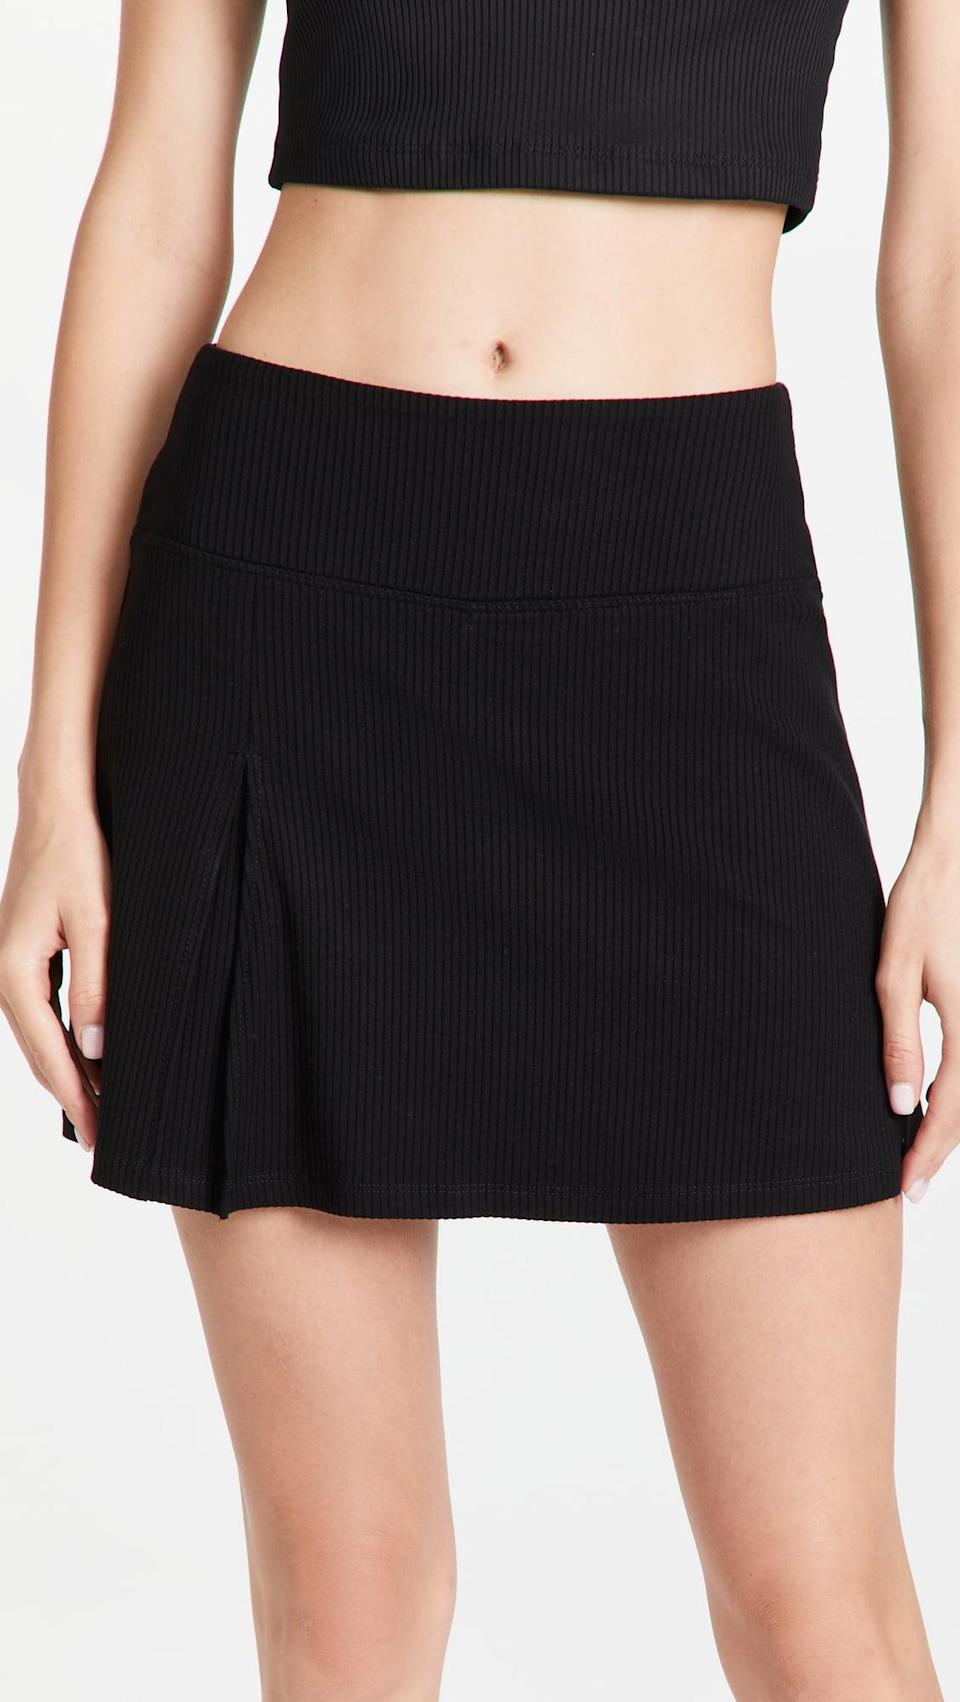 <p>We know what you're thinking, a skort seems so early '00s, but we love it for that. No doubt the <span>Year of Ours Club Skort</span> ($123) will keep you comfy, and we're into the sporty vibe.</p>